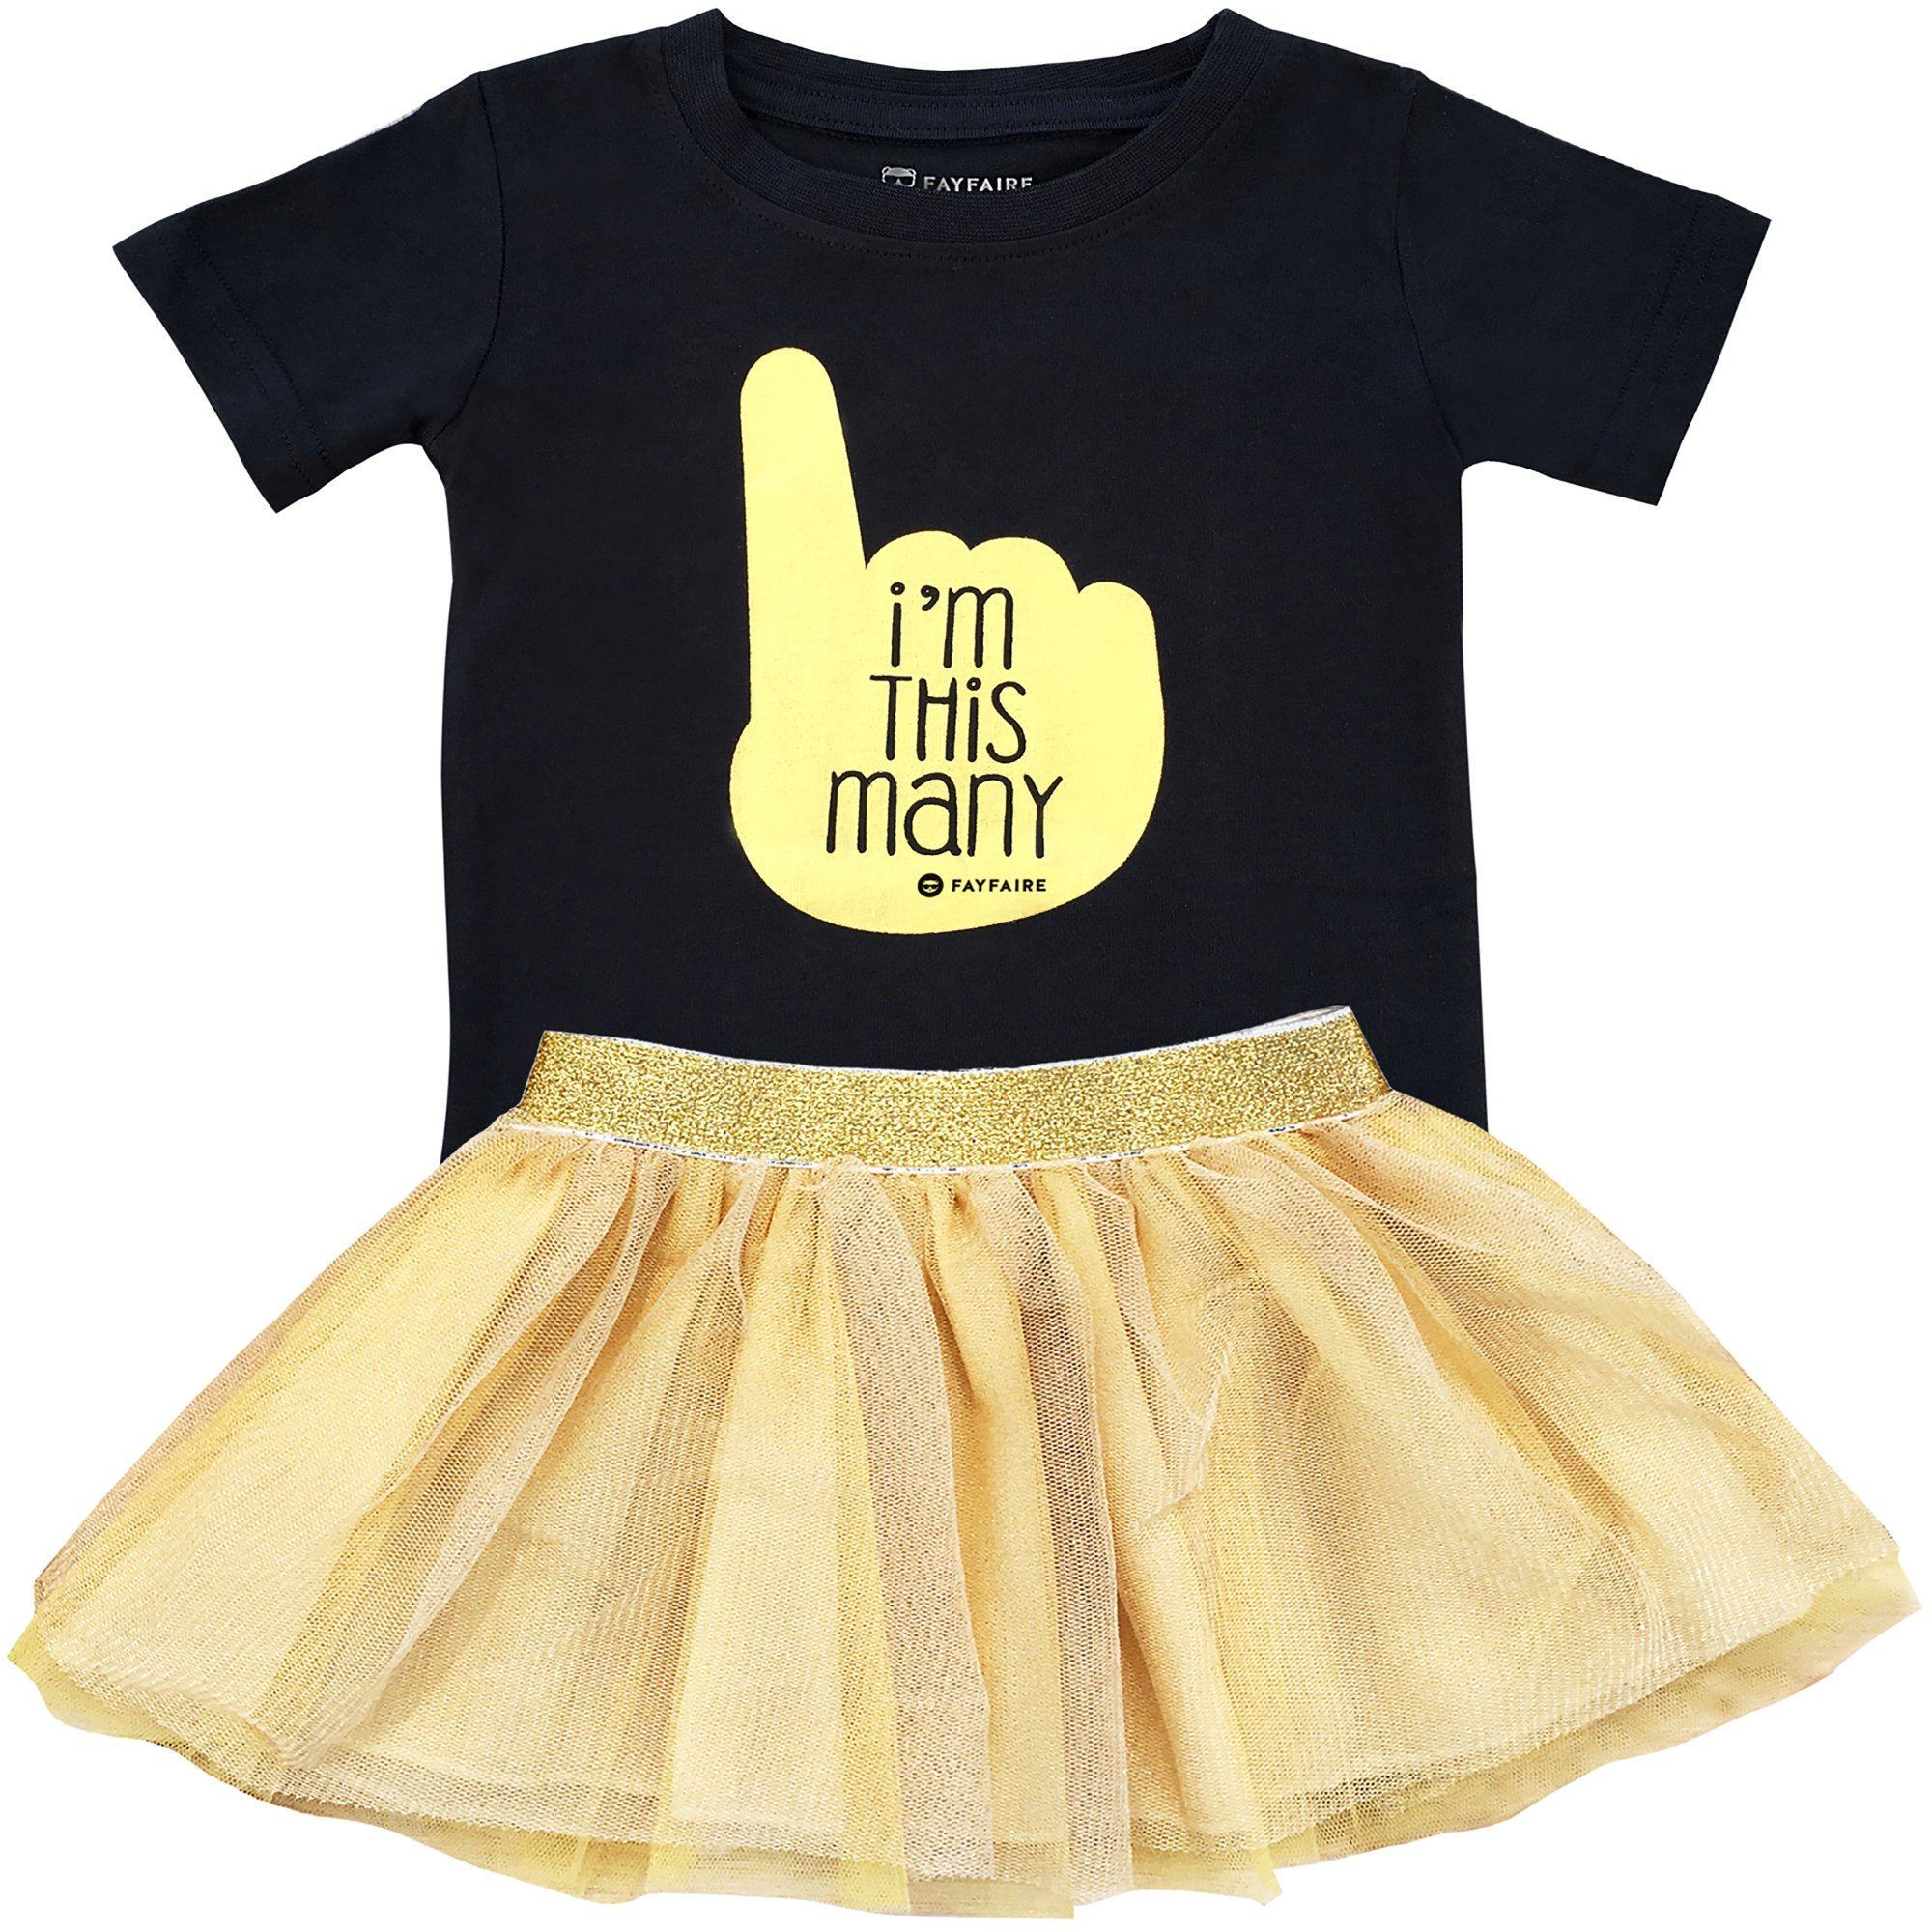 Fayfaire First Birthday Shirt Outfit: Boutique Quality 1st Bday I'm This Many 12M